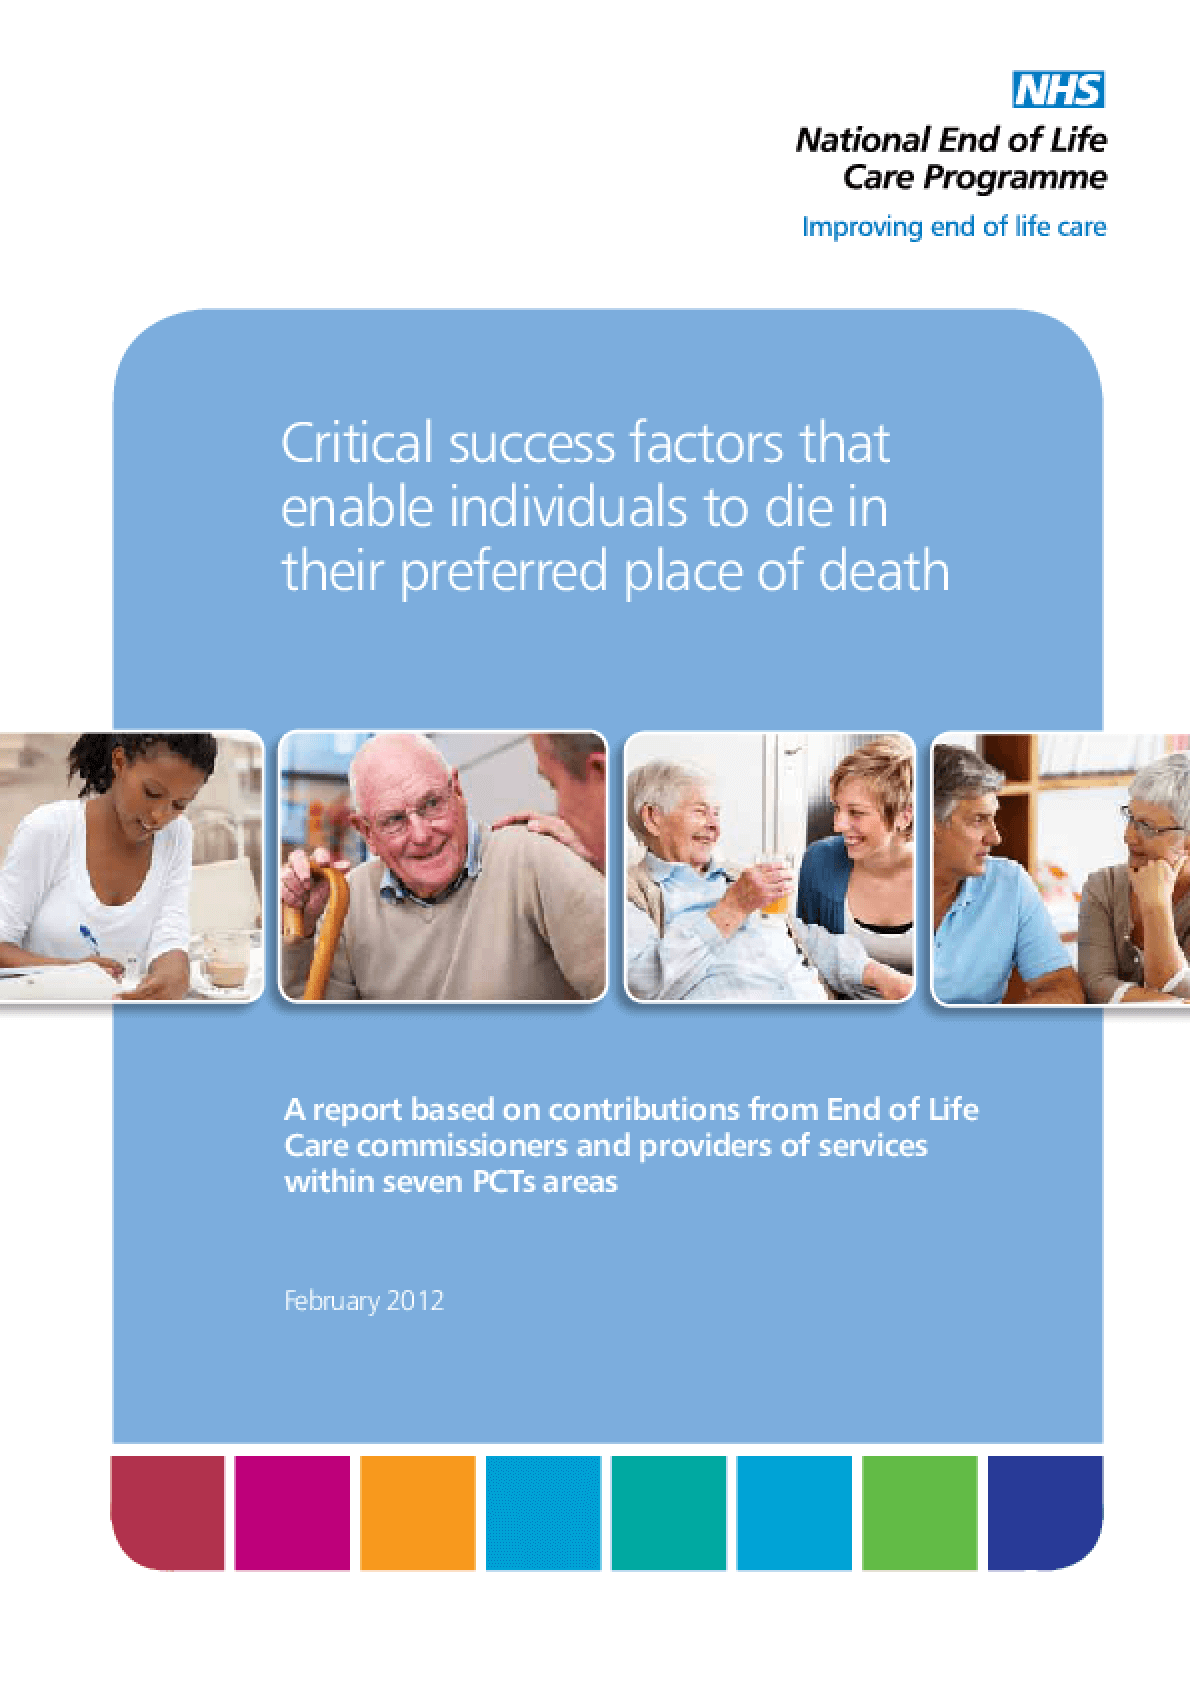 Critical Success Factors that Enable Individuals to Die in their Preferred Place of Death